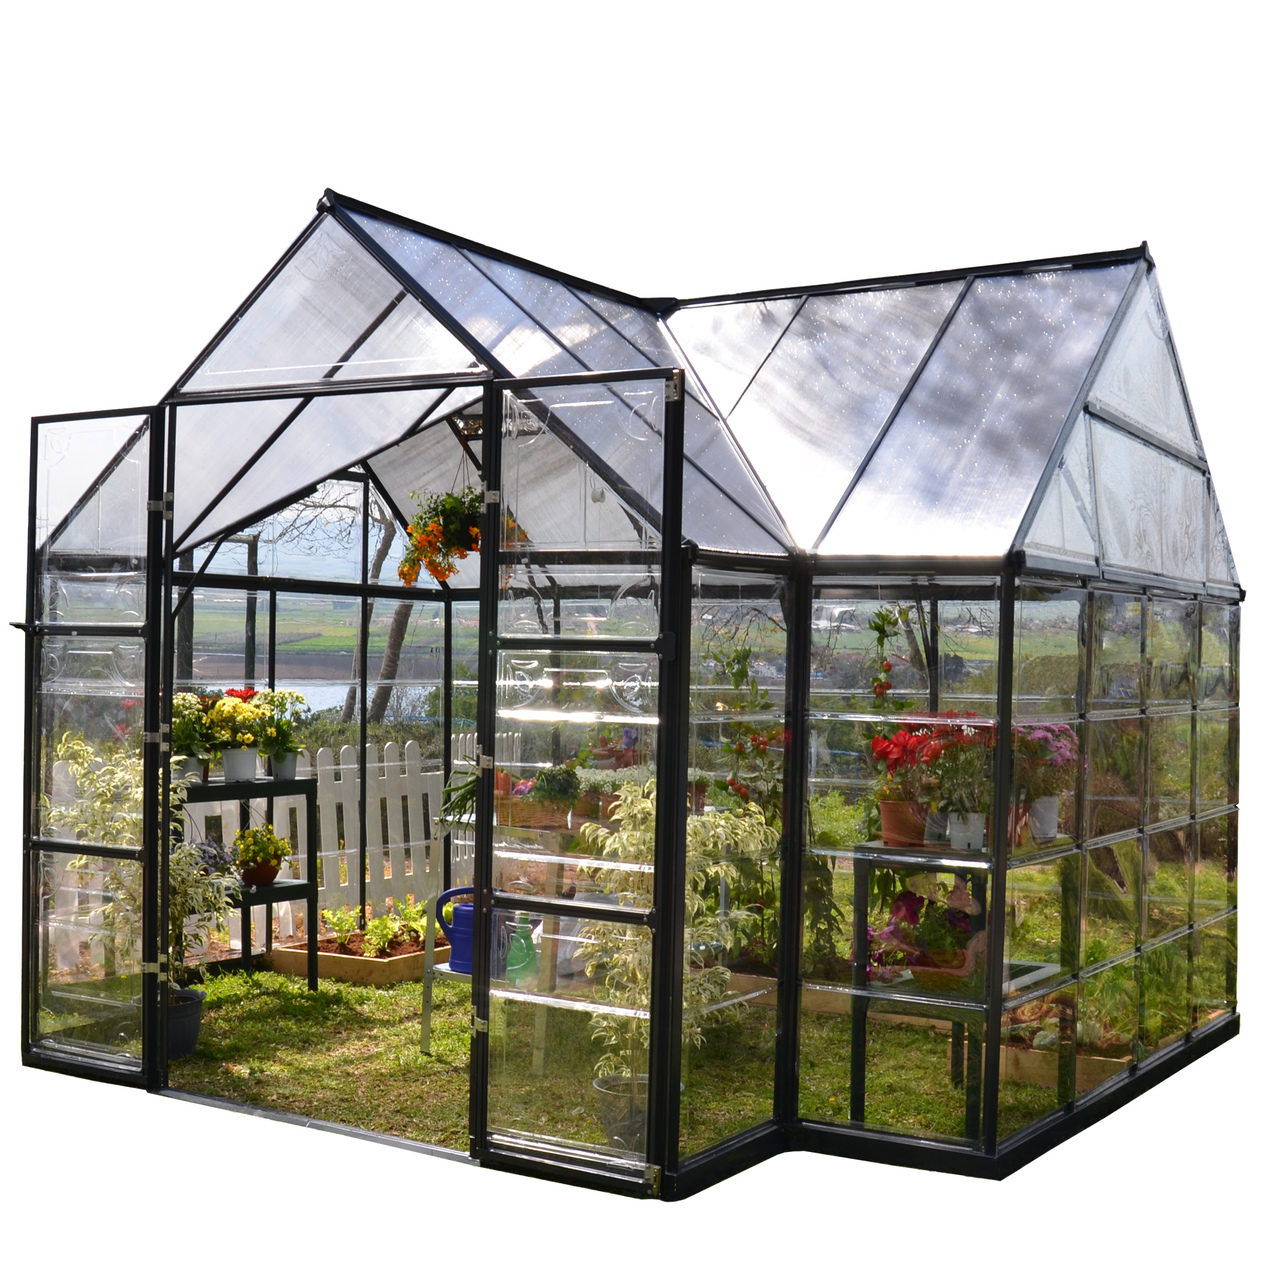 Chalet Greenhouse Kit